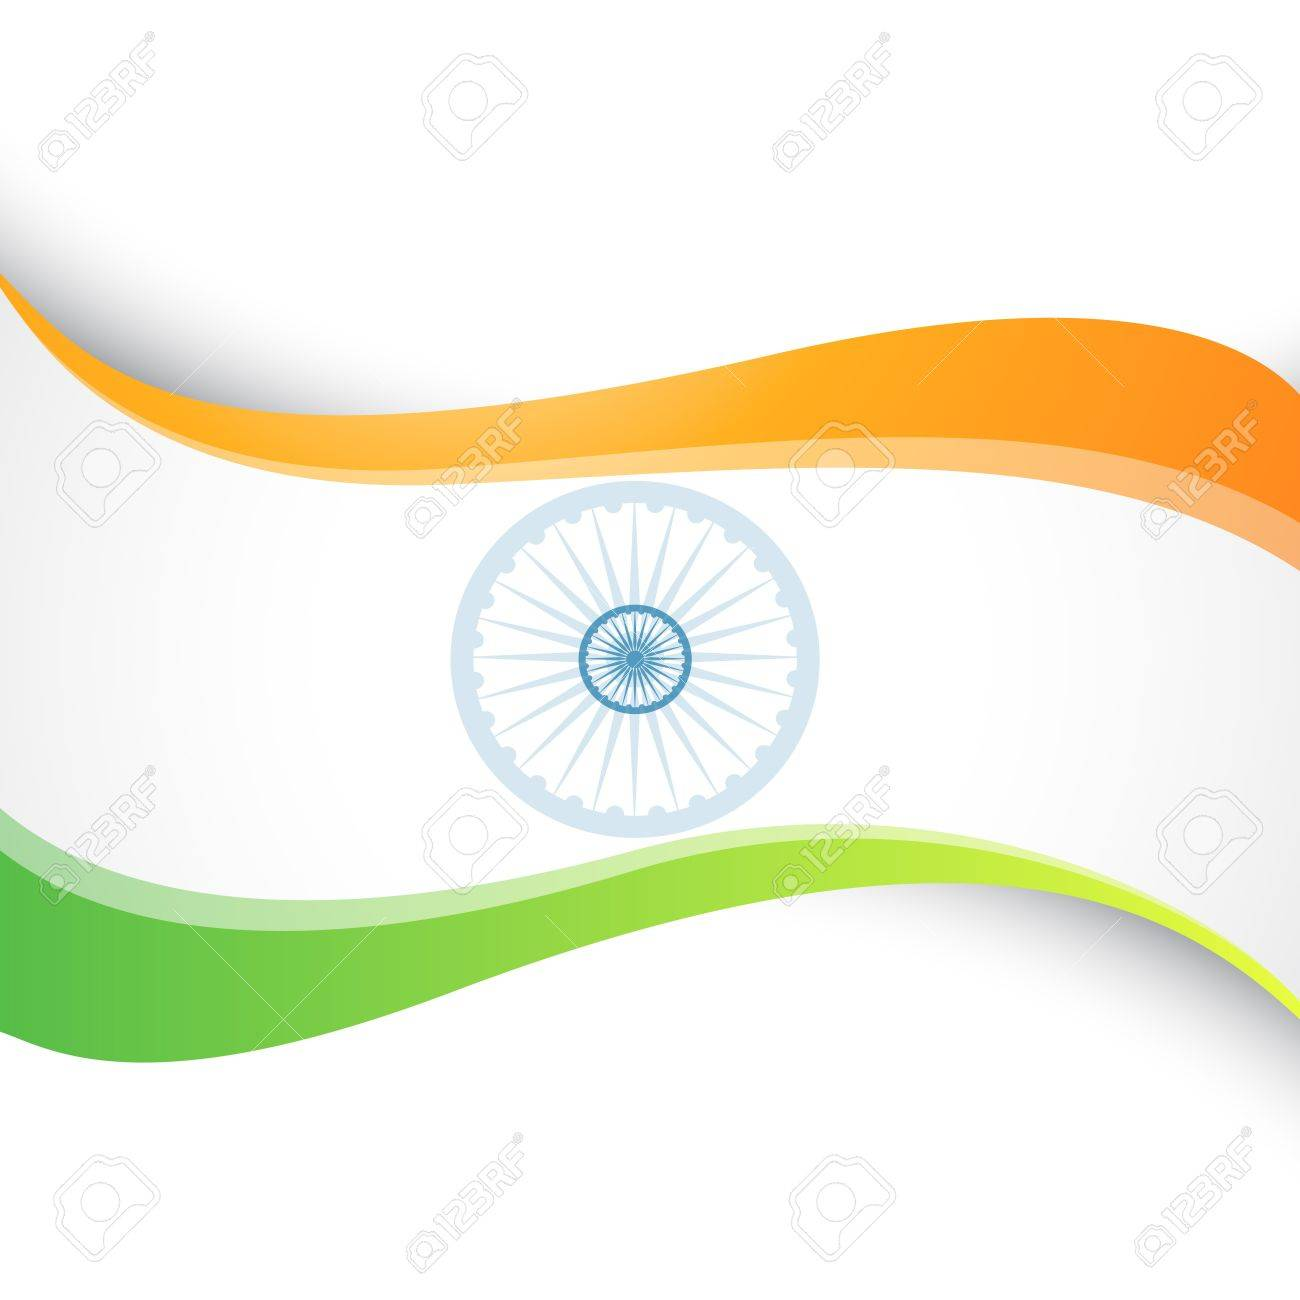 wave style indian flag design Stock Vector - 12041739